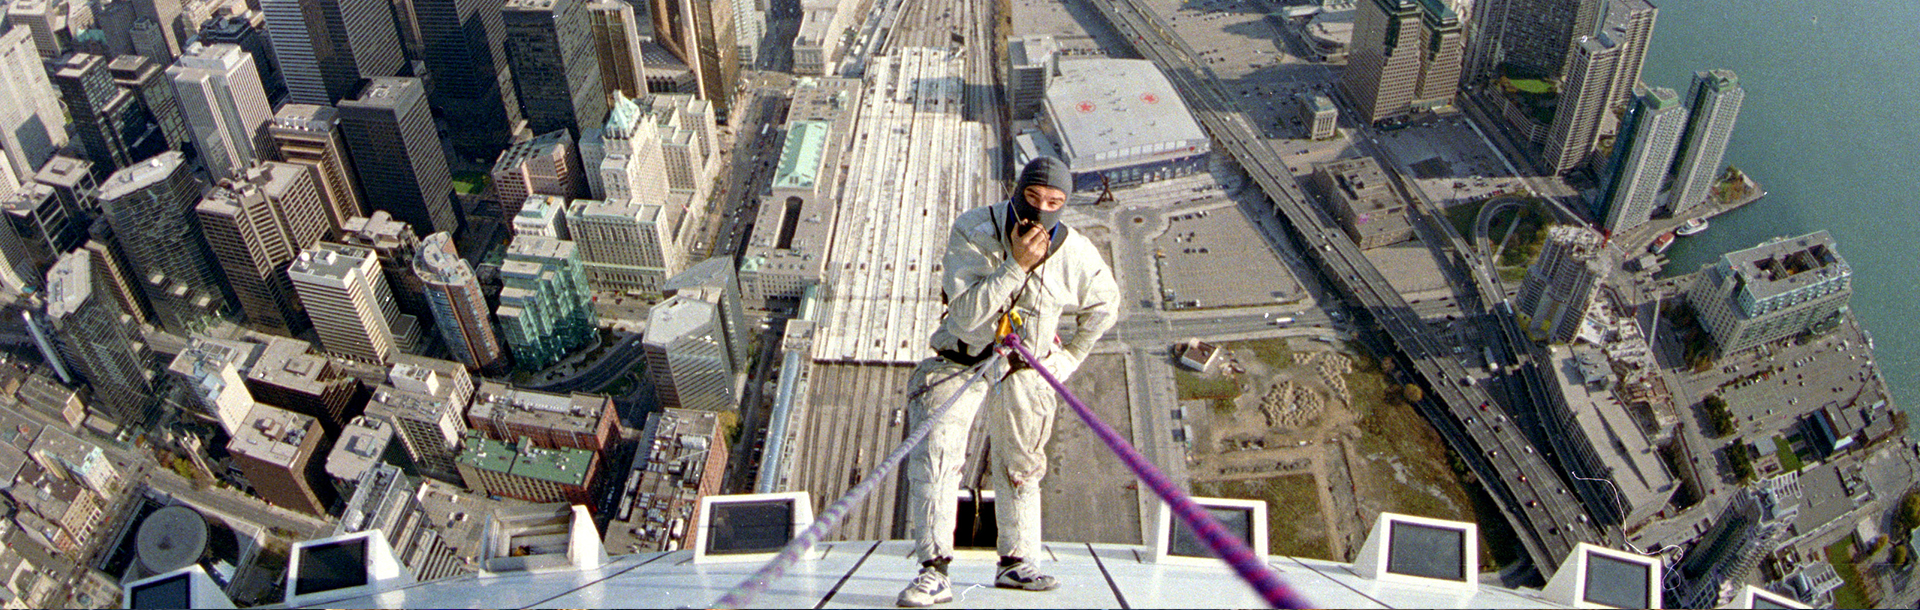 Rope Access Rappelling from World's Tallest building